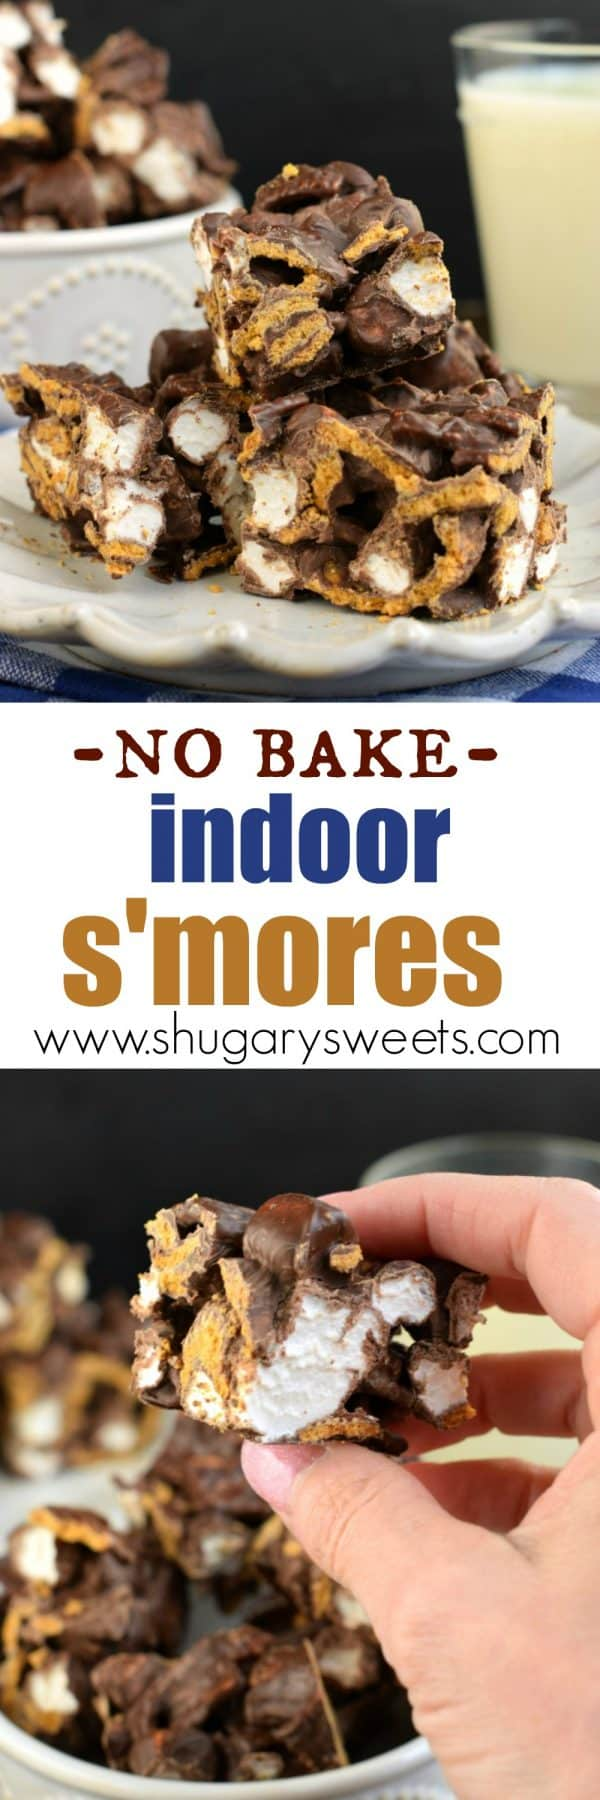 No Bake Indoor S'mores Bars with just 3 ingredients! Easy to make, no campfire needed.